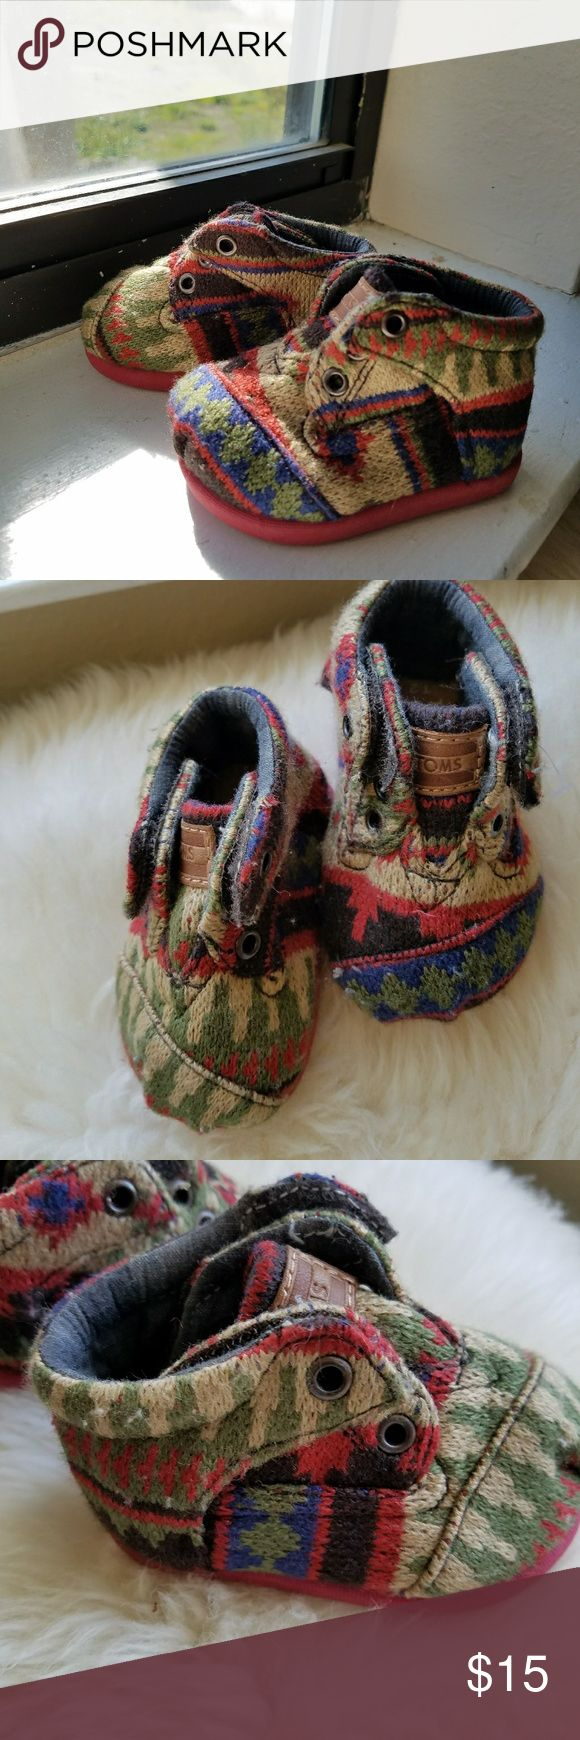 Aztec Baby Tom's shows size T2 Shoes are a fabric with aztec pattern in red, blue, green, tan and black, with double velcro. Very clean. Fabric is a tiny bit fuzzy. Shoes Baby & Walker